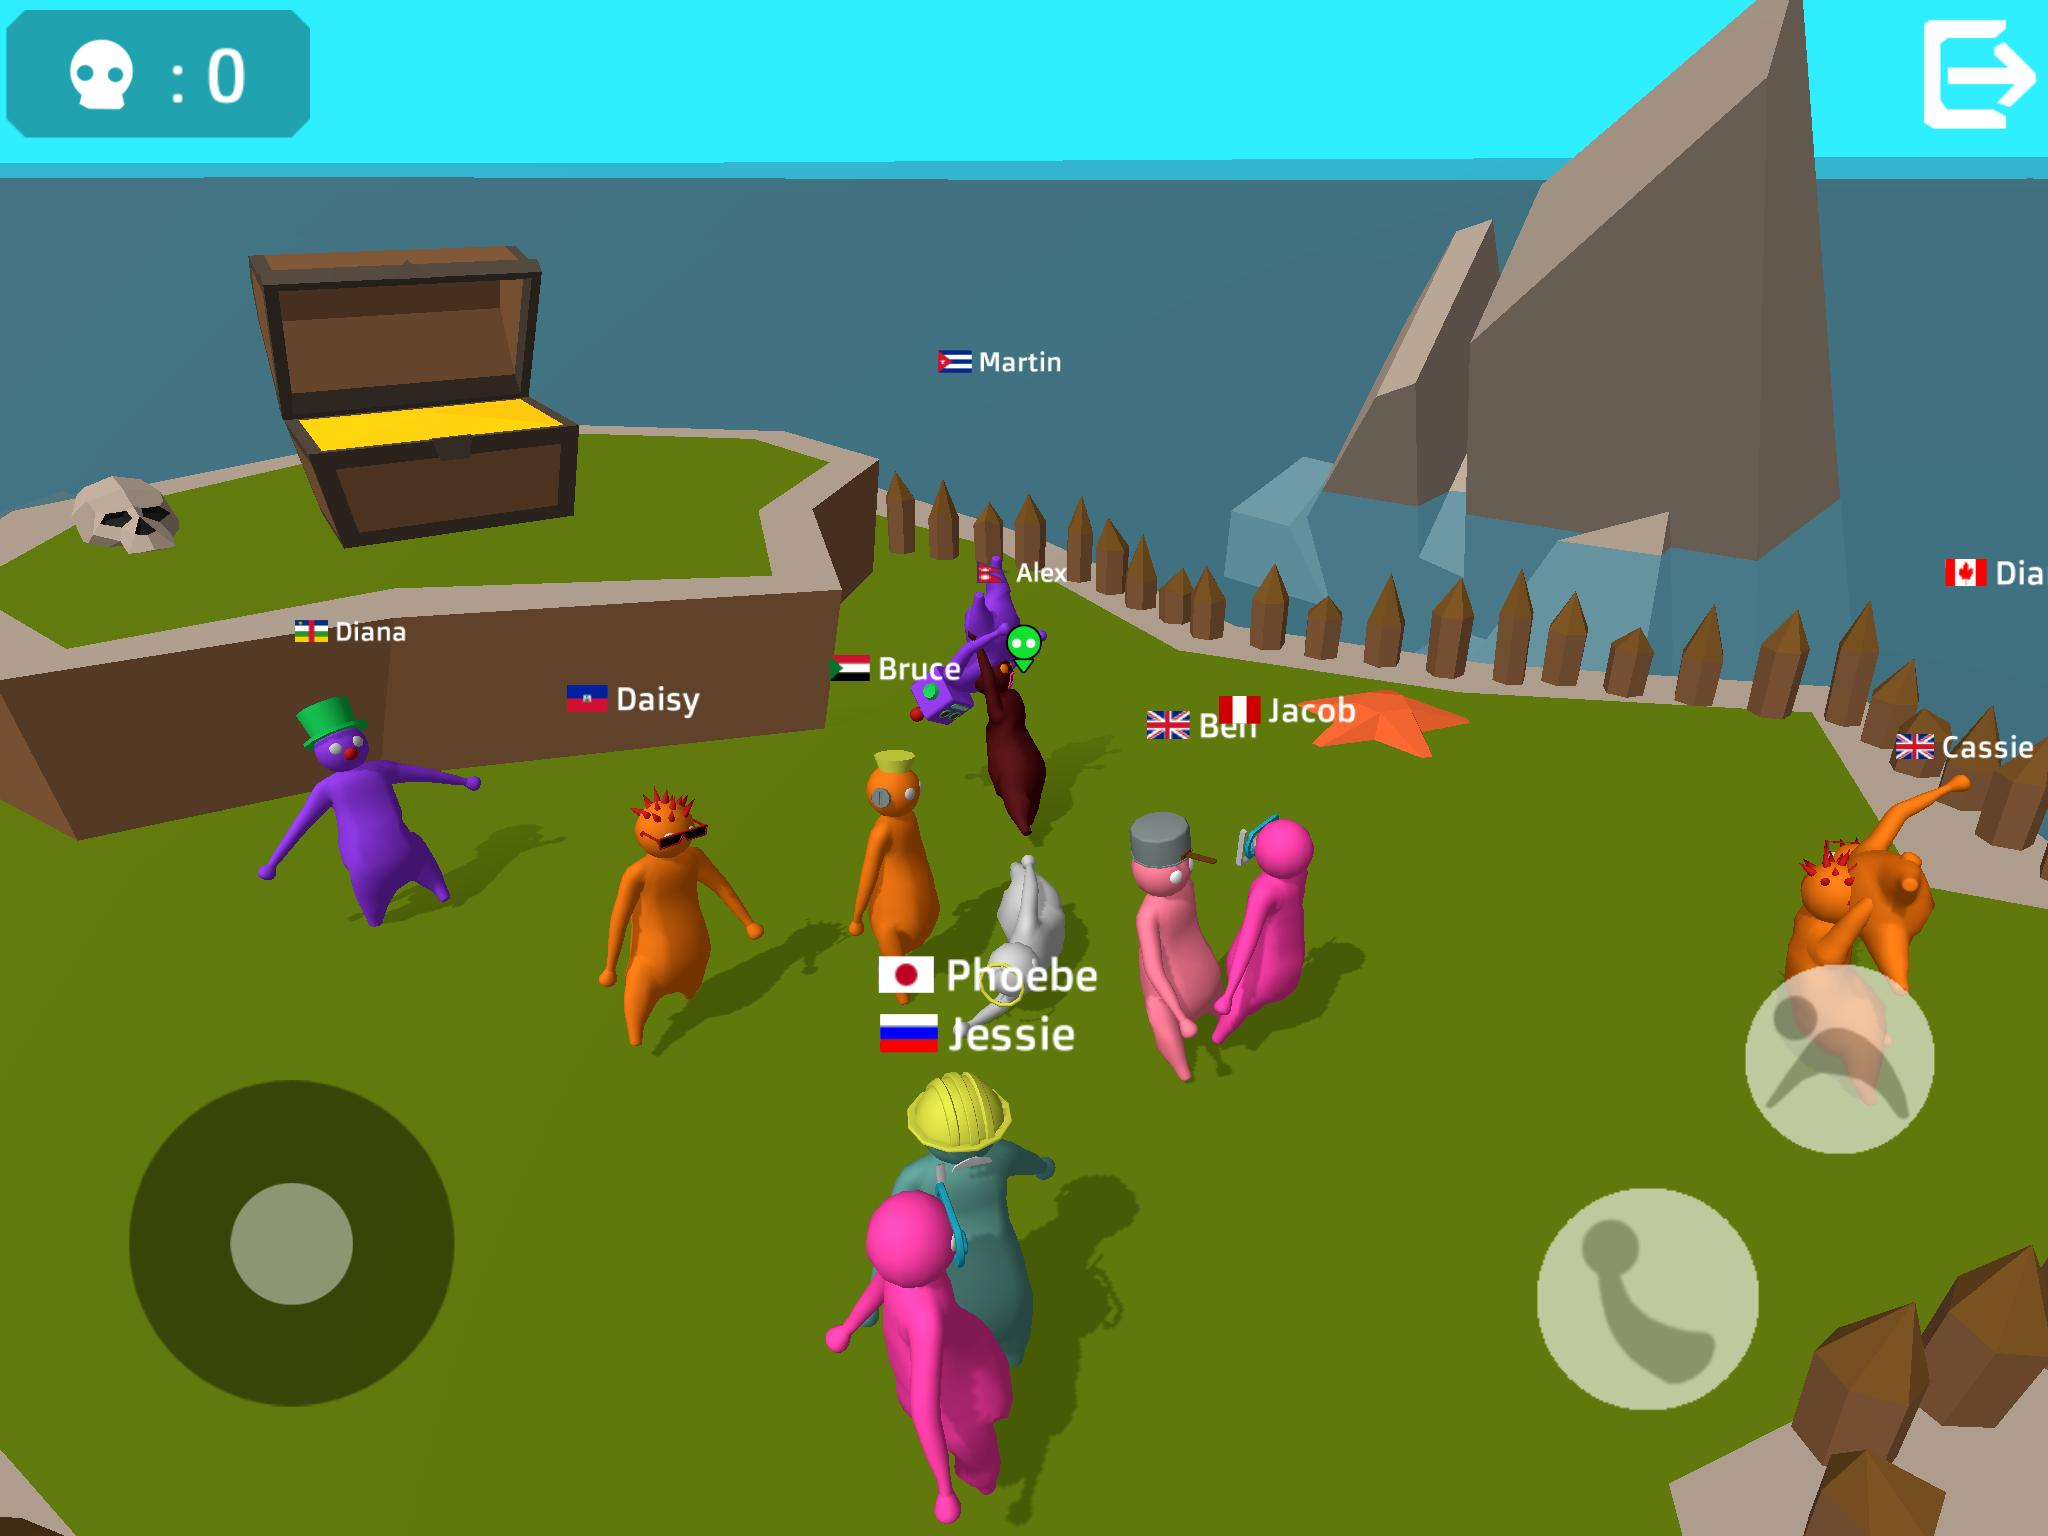 Noodleman.io - Fight Party Games 3.3 Screenshot 13